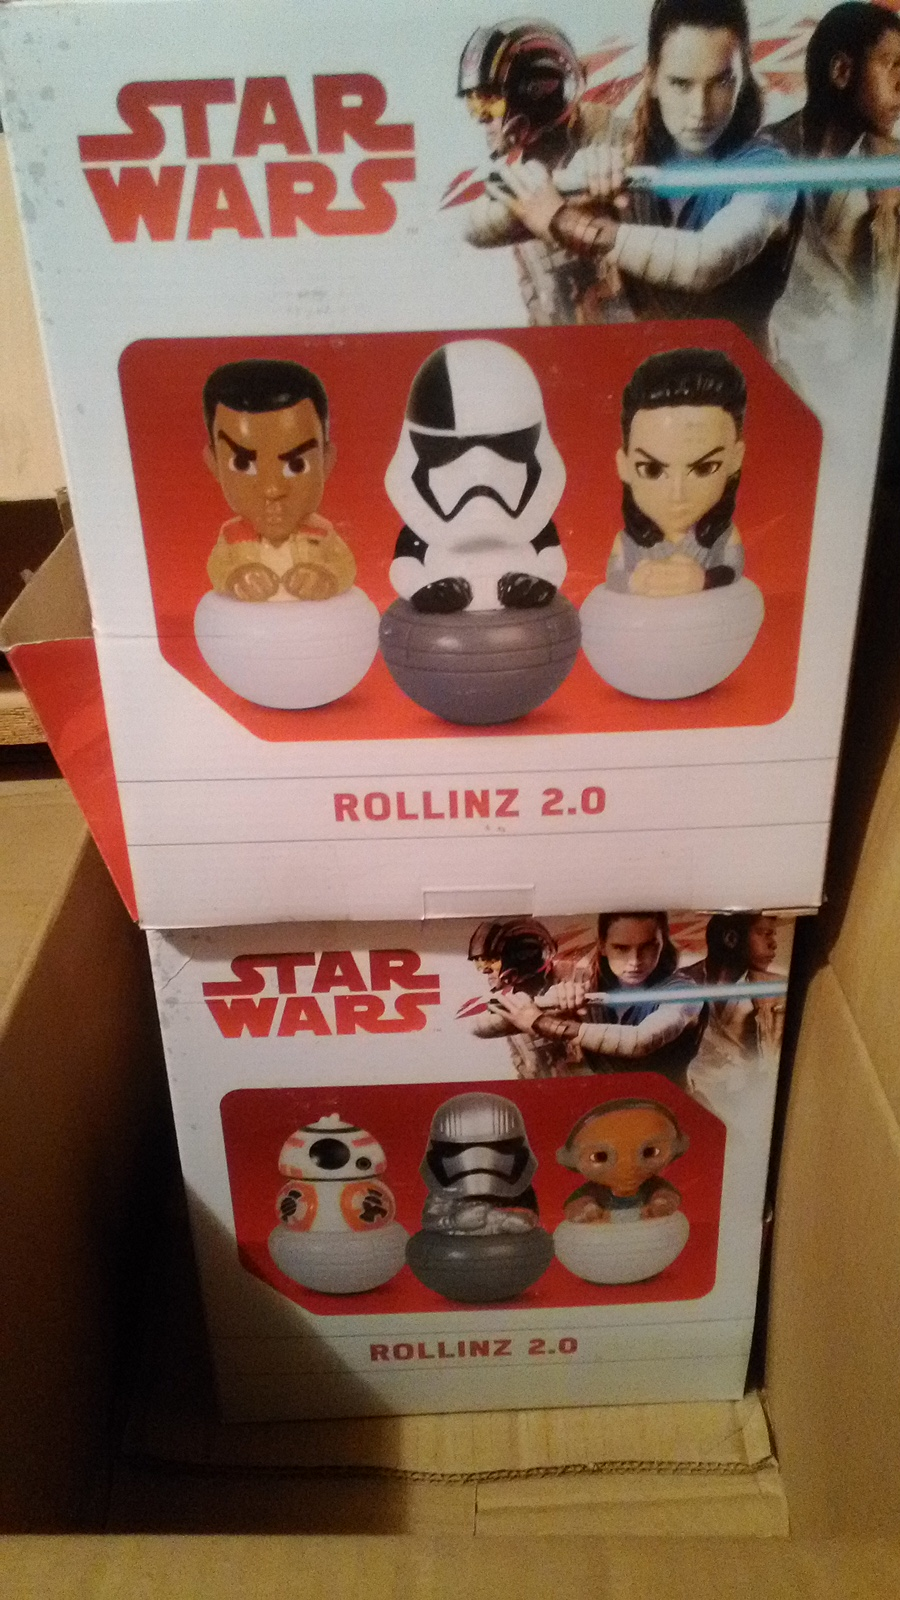 39532 - Star Wars Rollinz Collectible Figures Europe